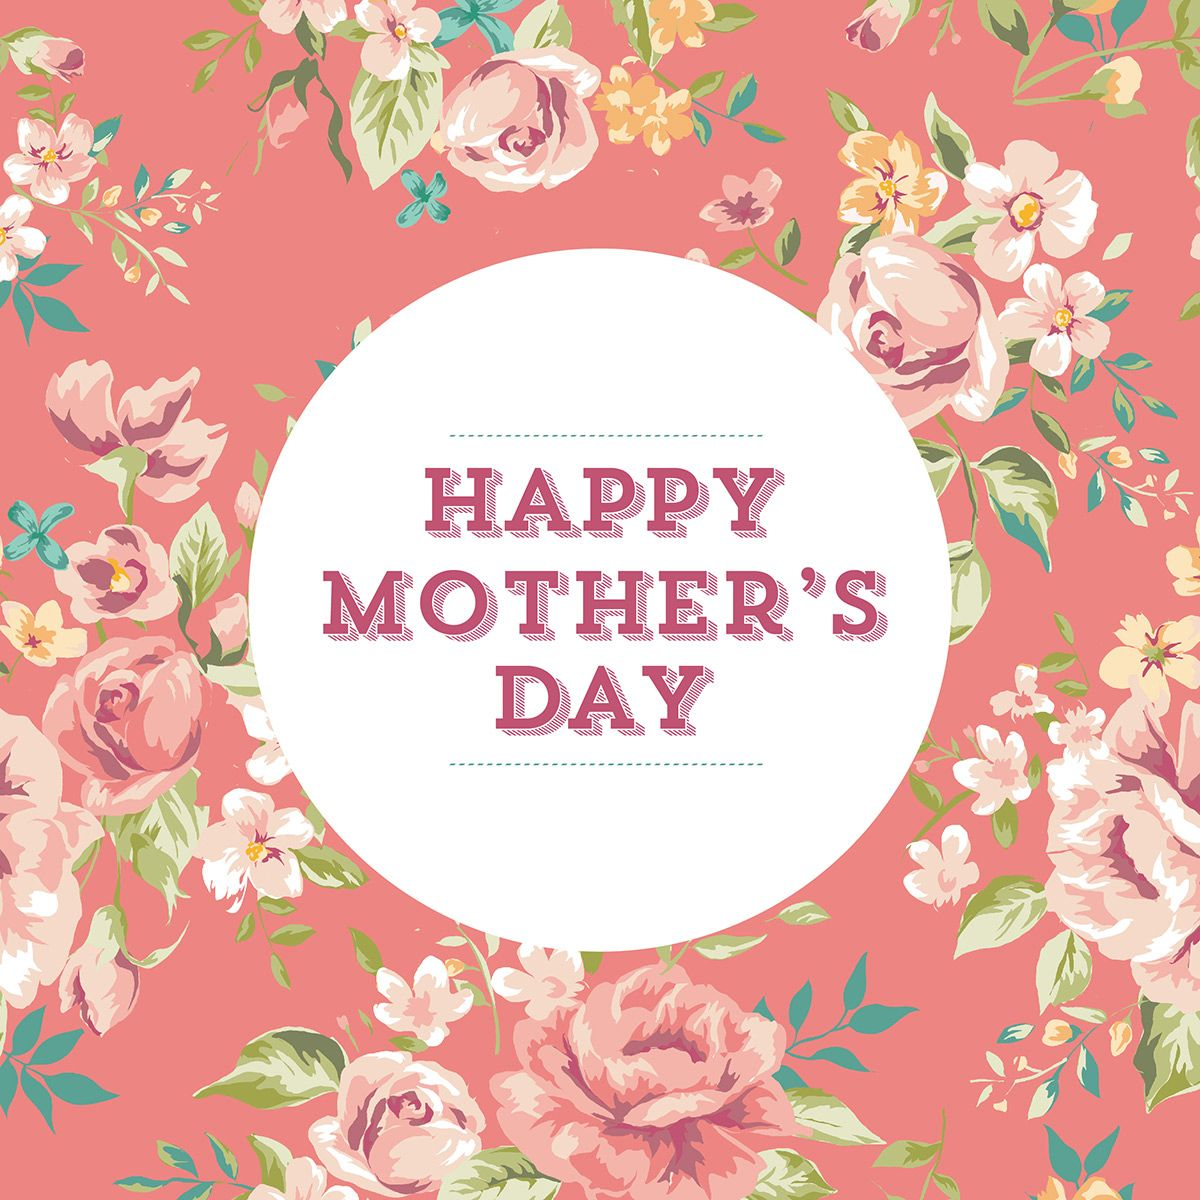 Free Mothers Day Ecards Graphics For Sending Via Facebook